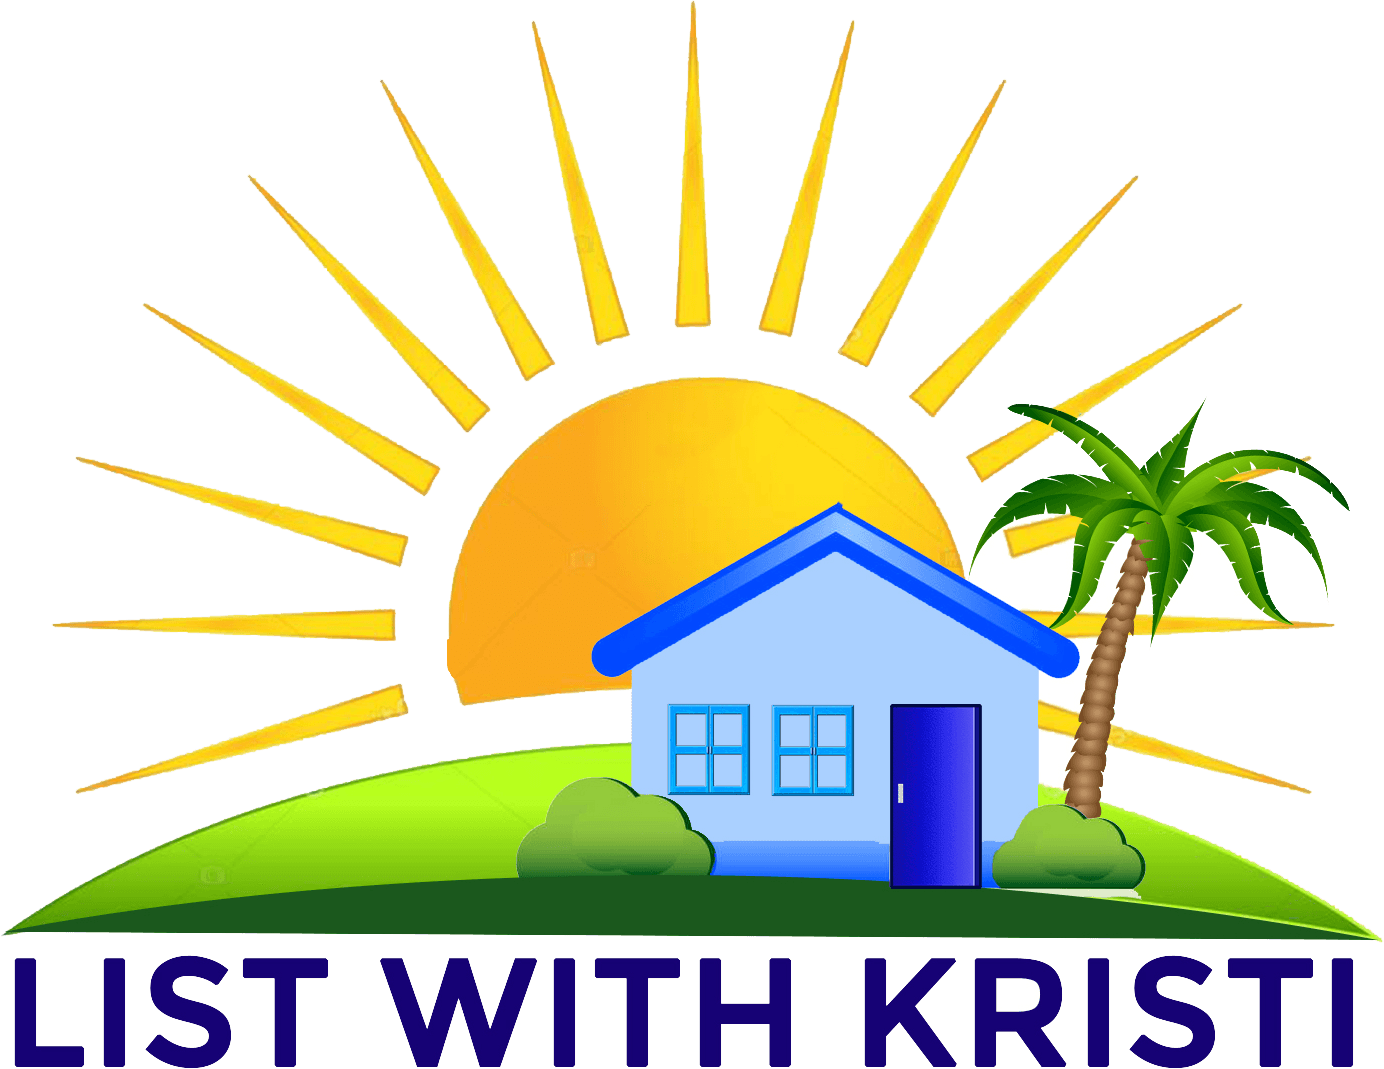 Boca Mission Bay Homes for Sale | Kristi Ramella 440-653-0382